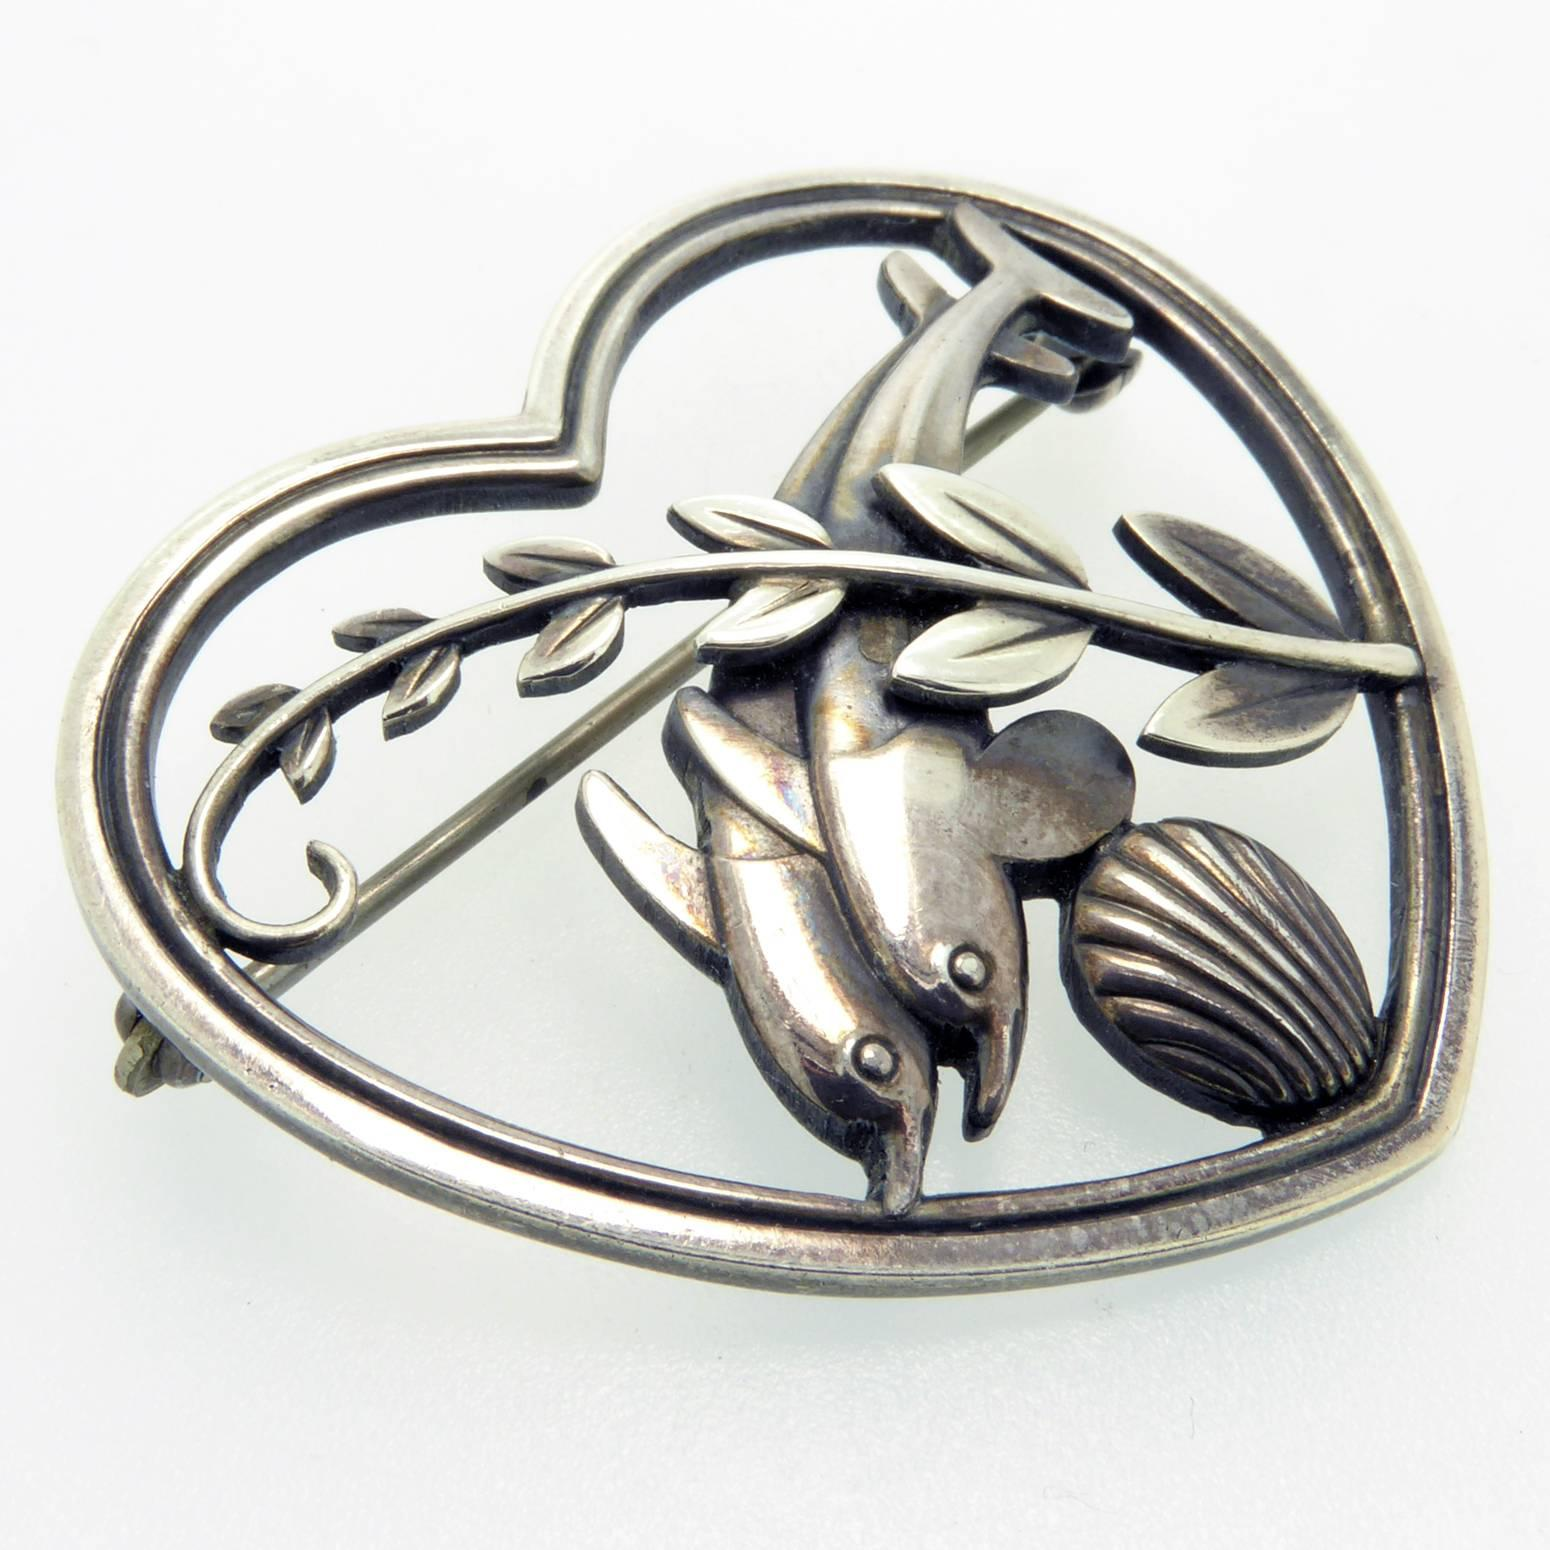 06870d8fa035 Georg Jensen Vintage Silver Brooch, Leaping Dolphins, Mid-20th Century,  Danish at 1stdibs